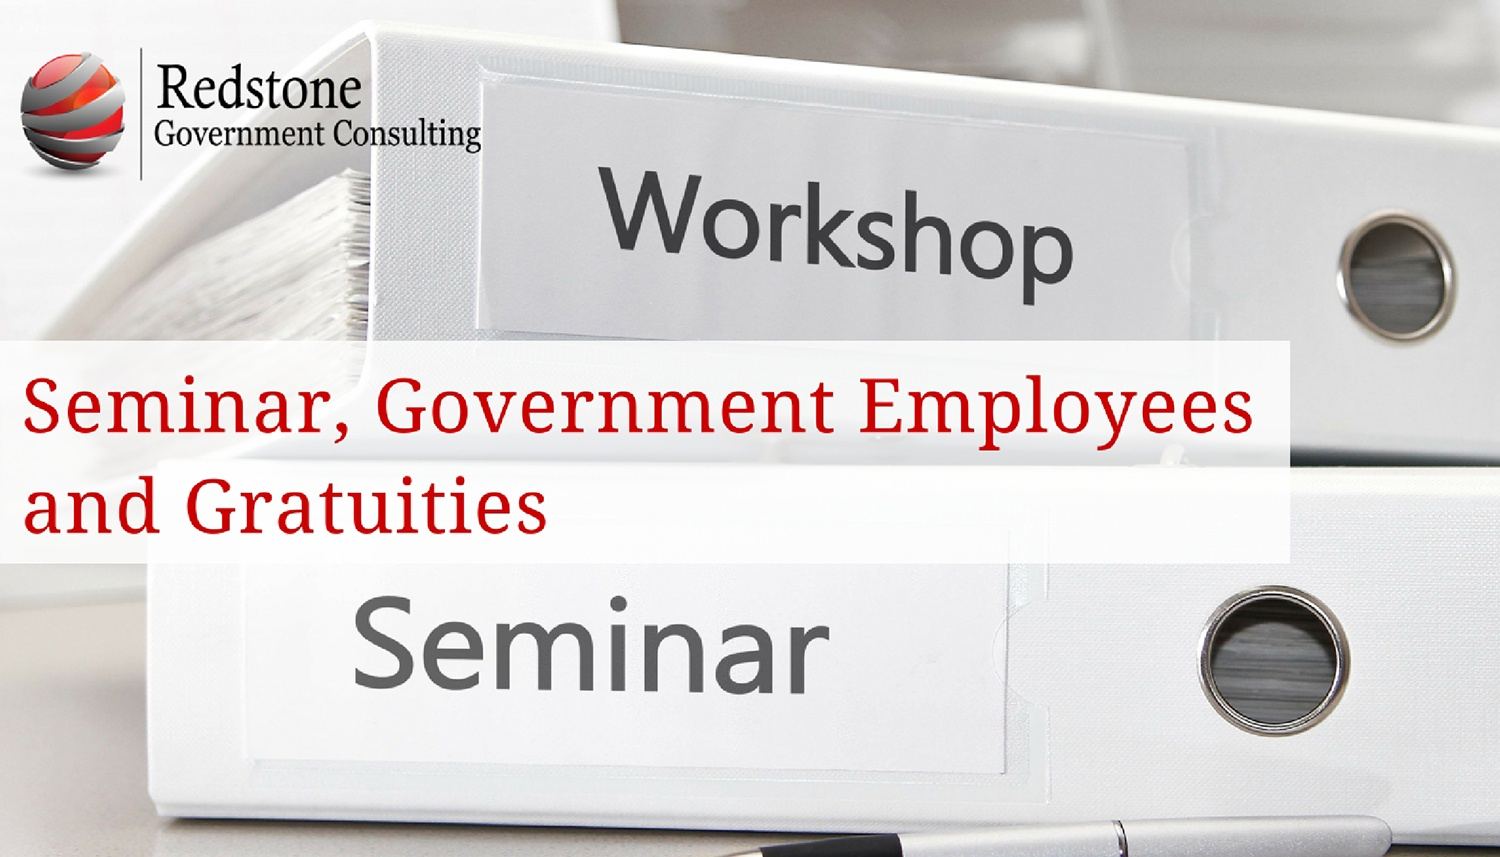 Redstone -Seminar, Government Employees and Gratuities